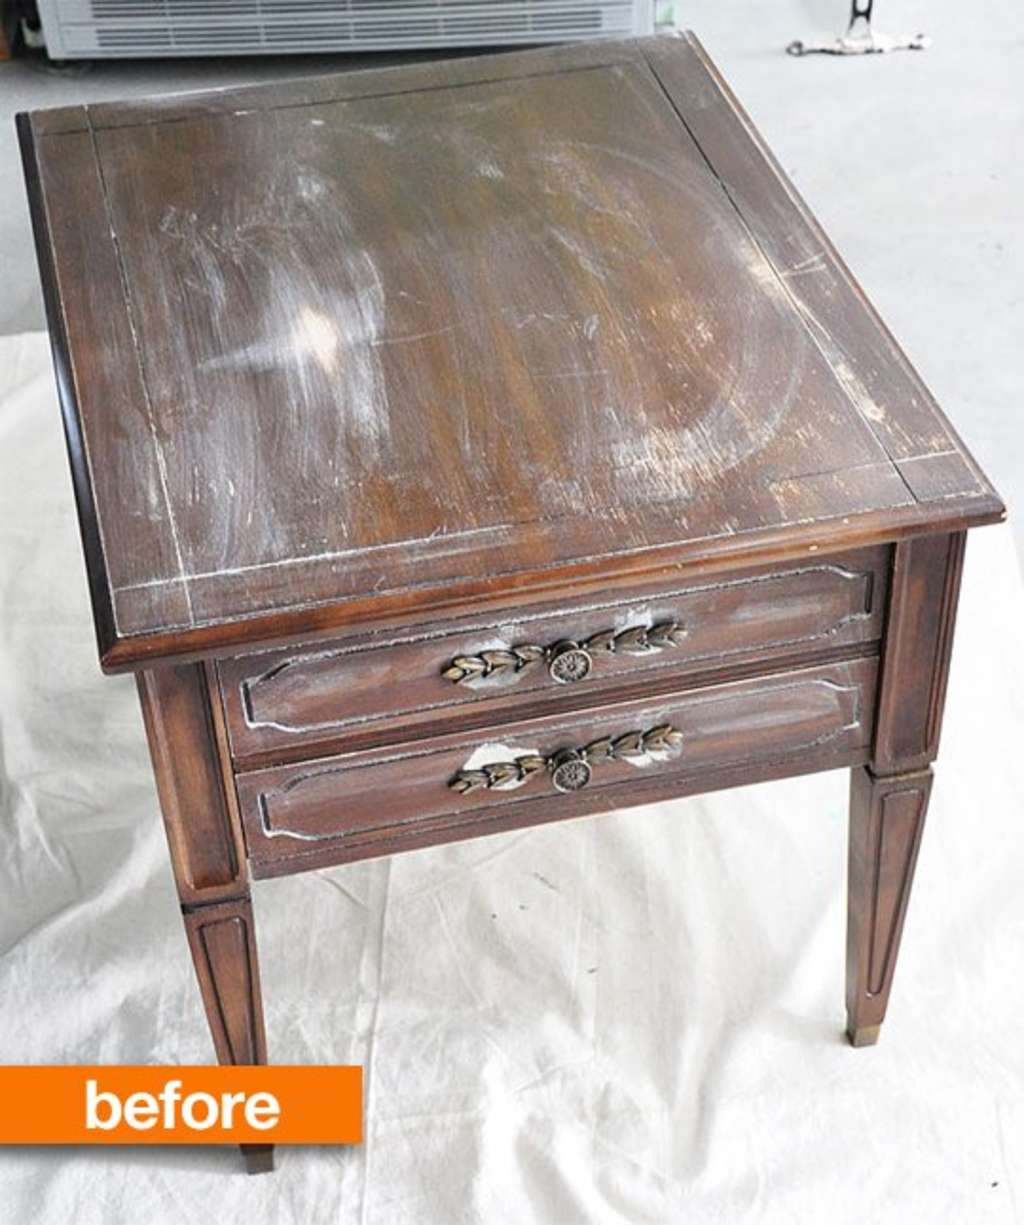 Before & After: What To Do With A Grimy Garage Sale Side Table